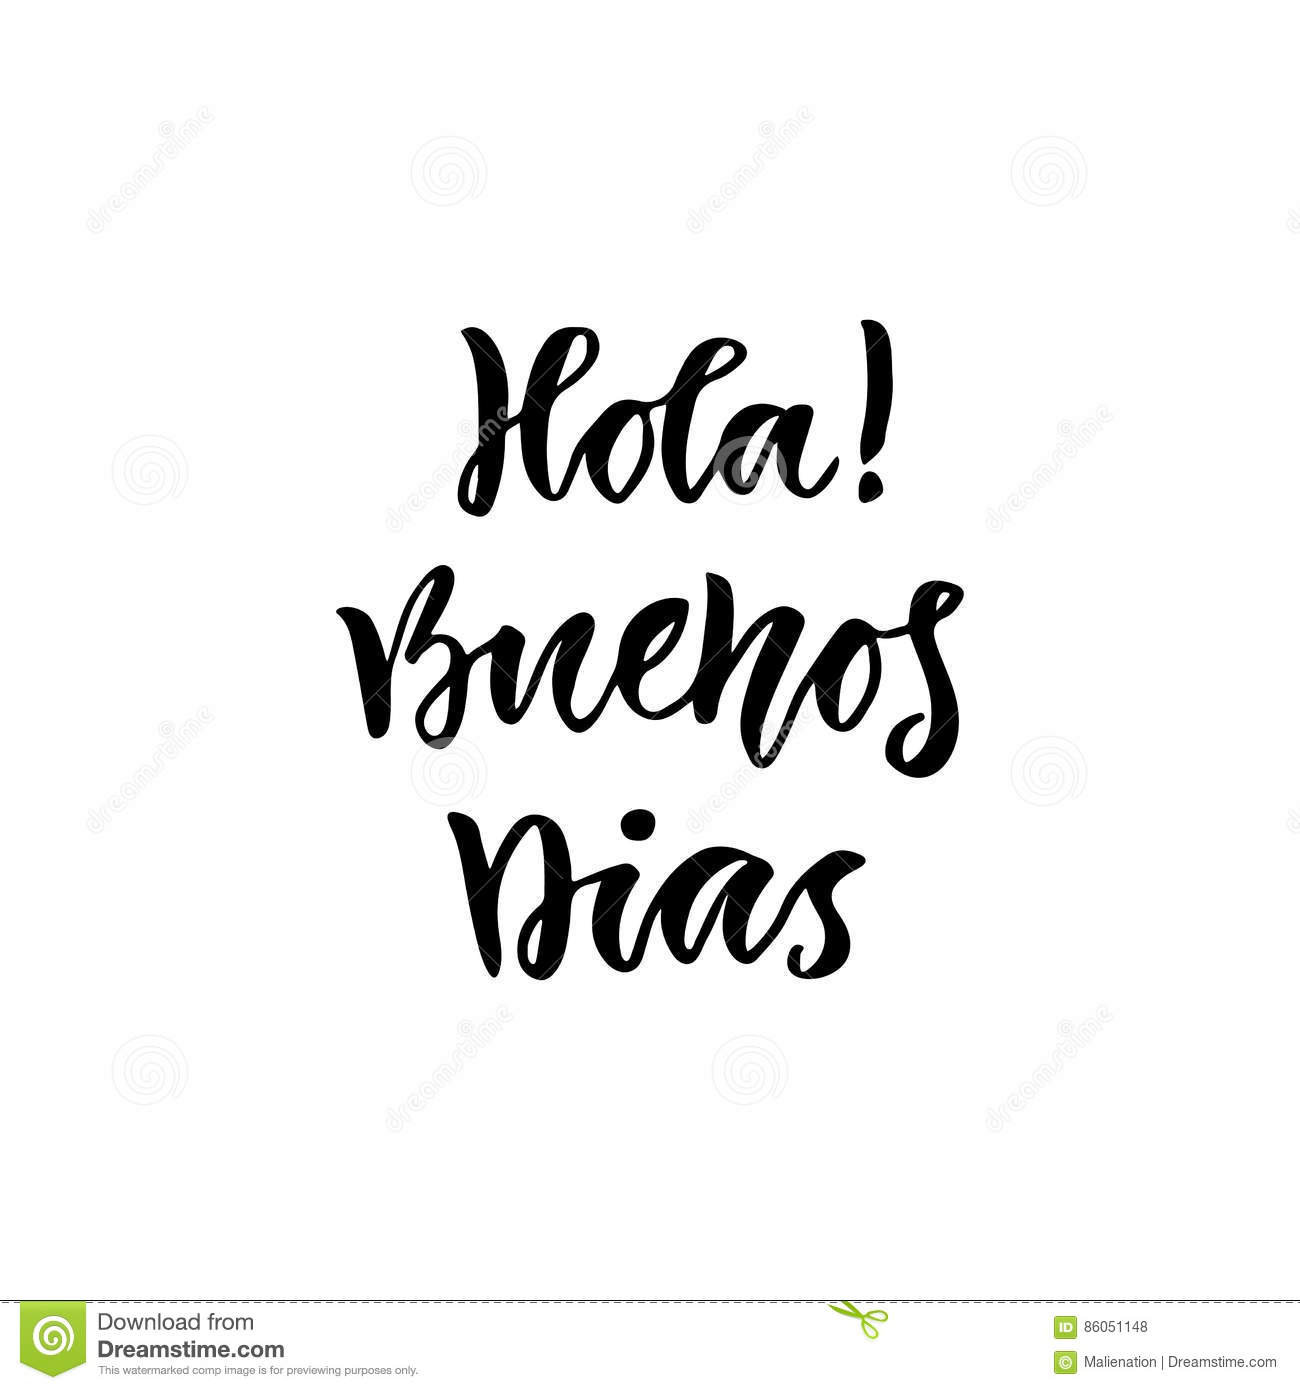 What Does Good Morning In Spanish : Spanish hola buenos dias in english hello good day